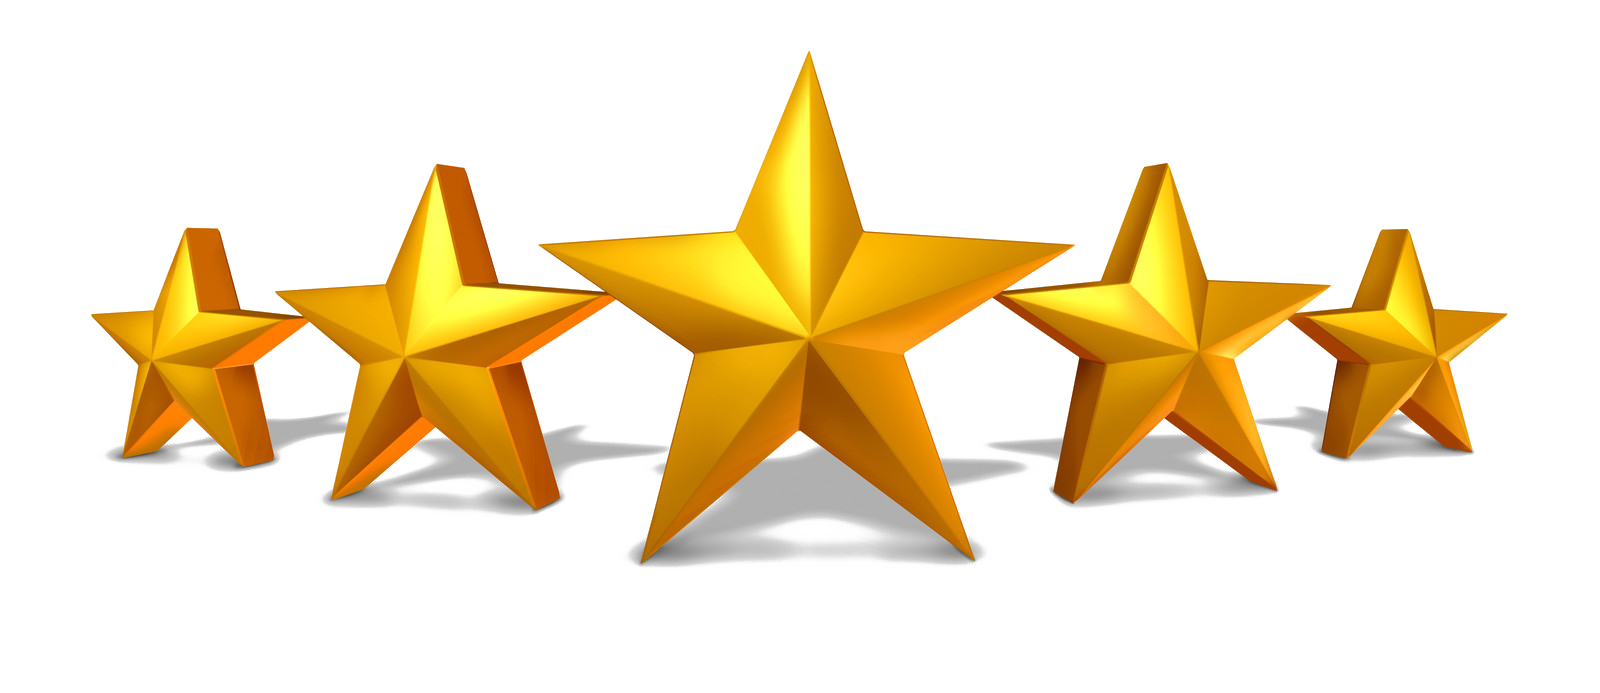 Industry recognition mini systems. 5 stars png transparent clipart freeuse